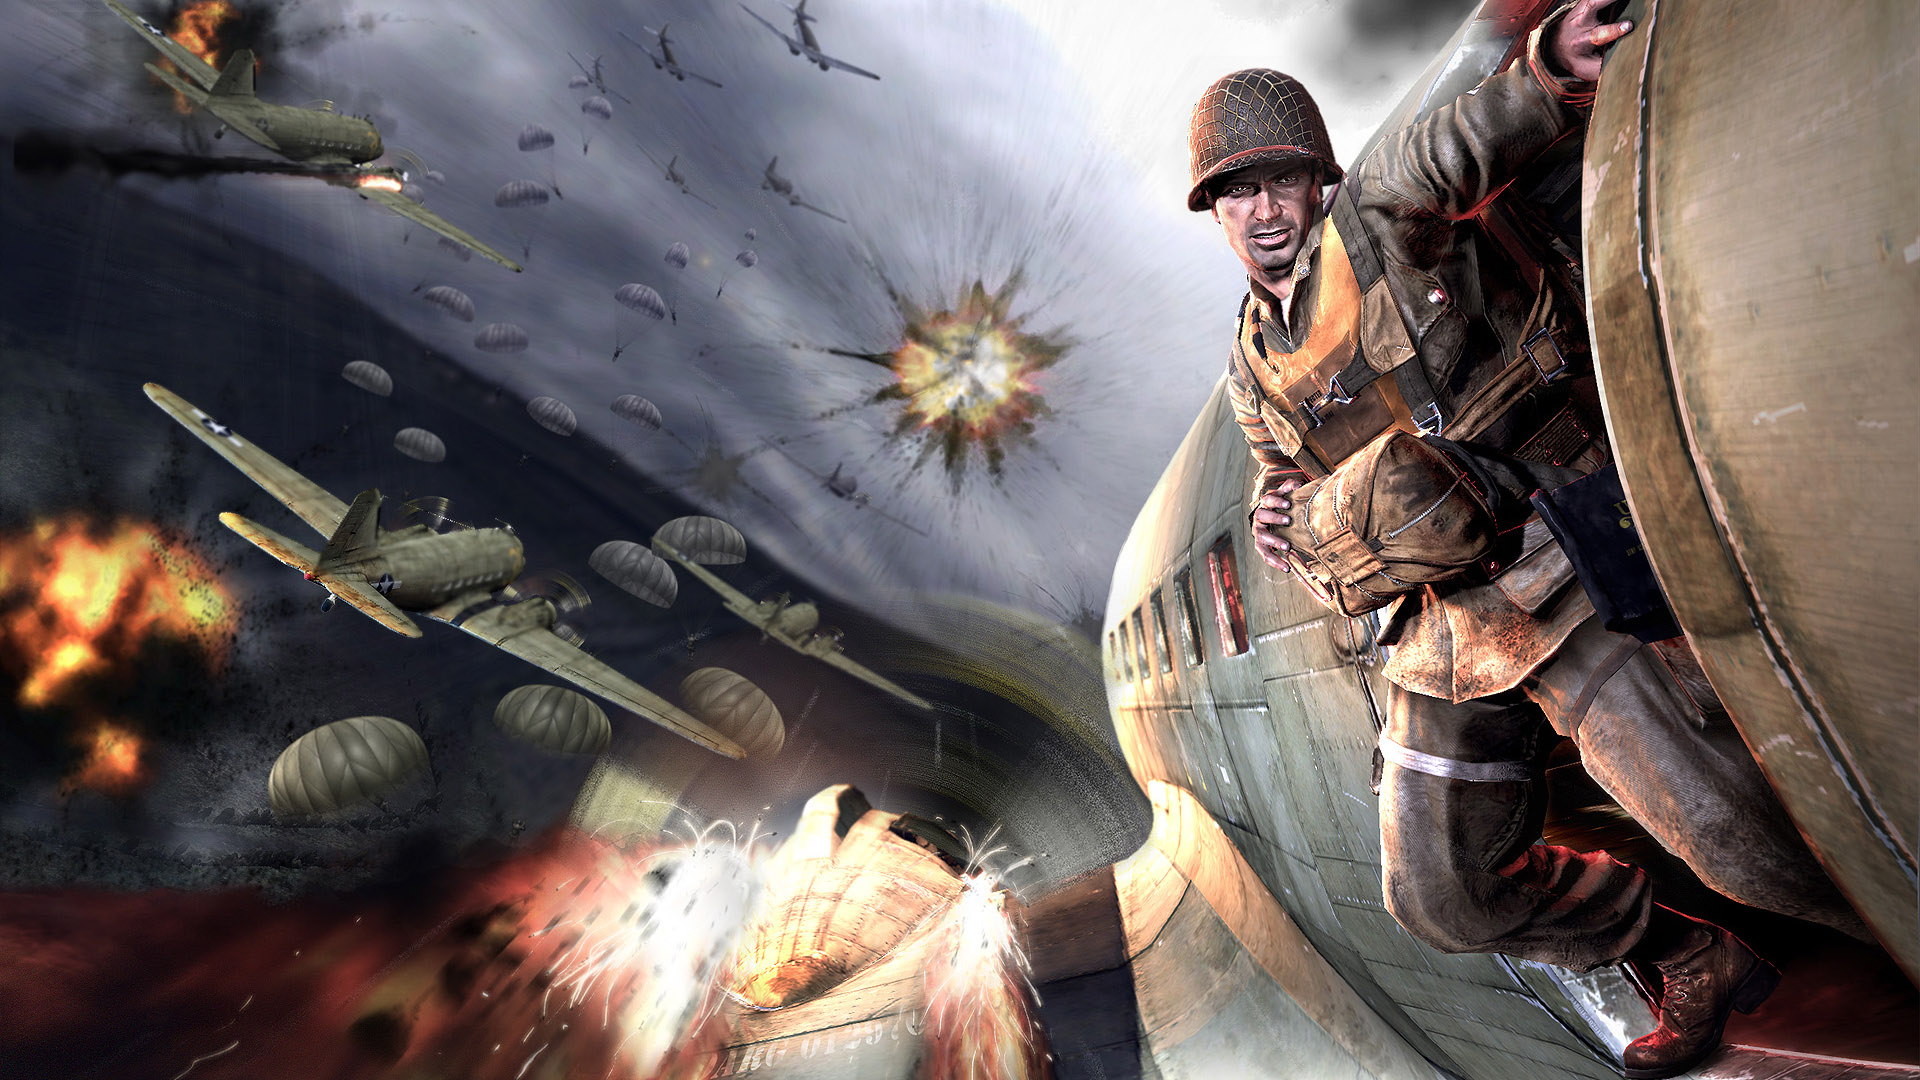 Epic WW2 Wallpapers